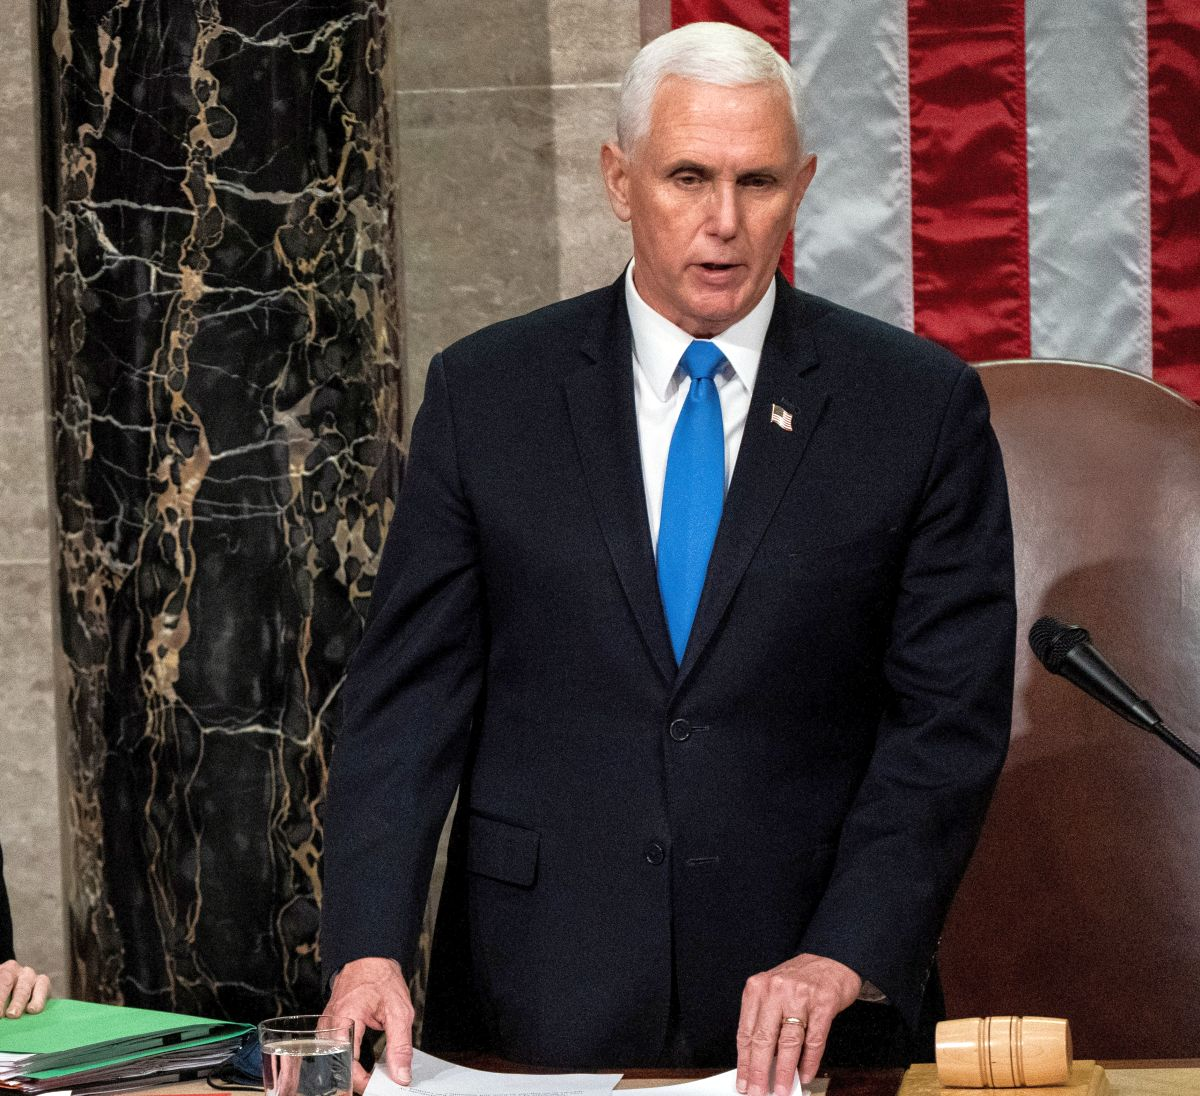 Pence to attend Biden's inauguration: Reports